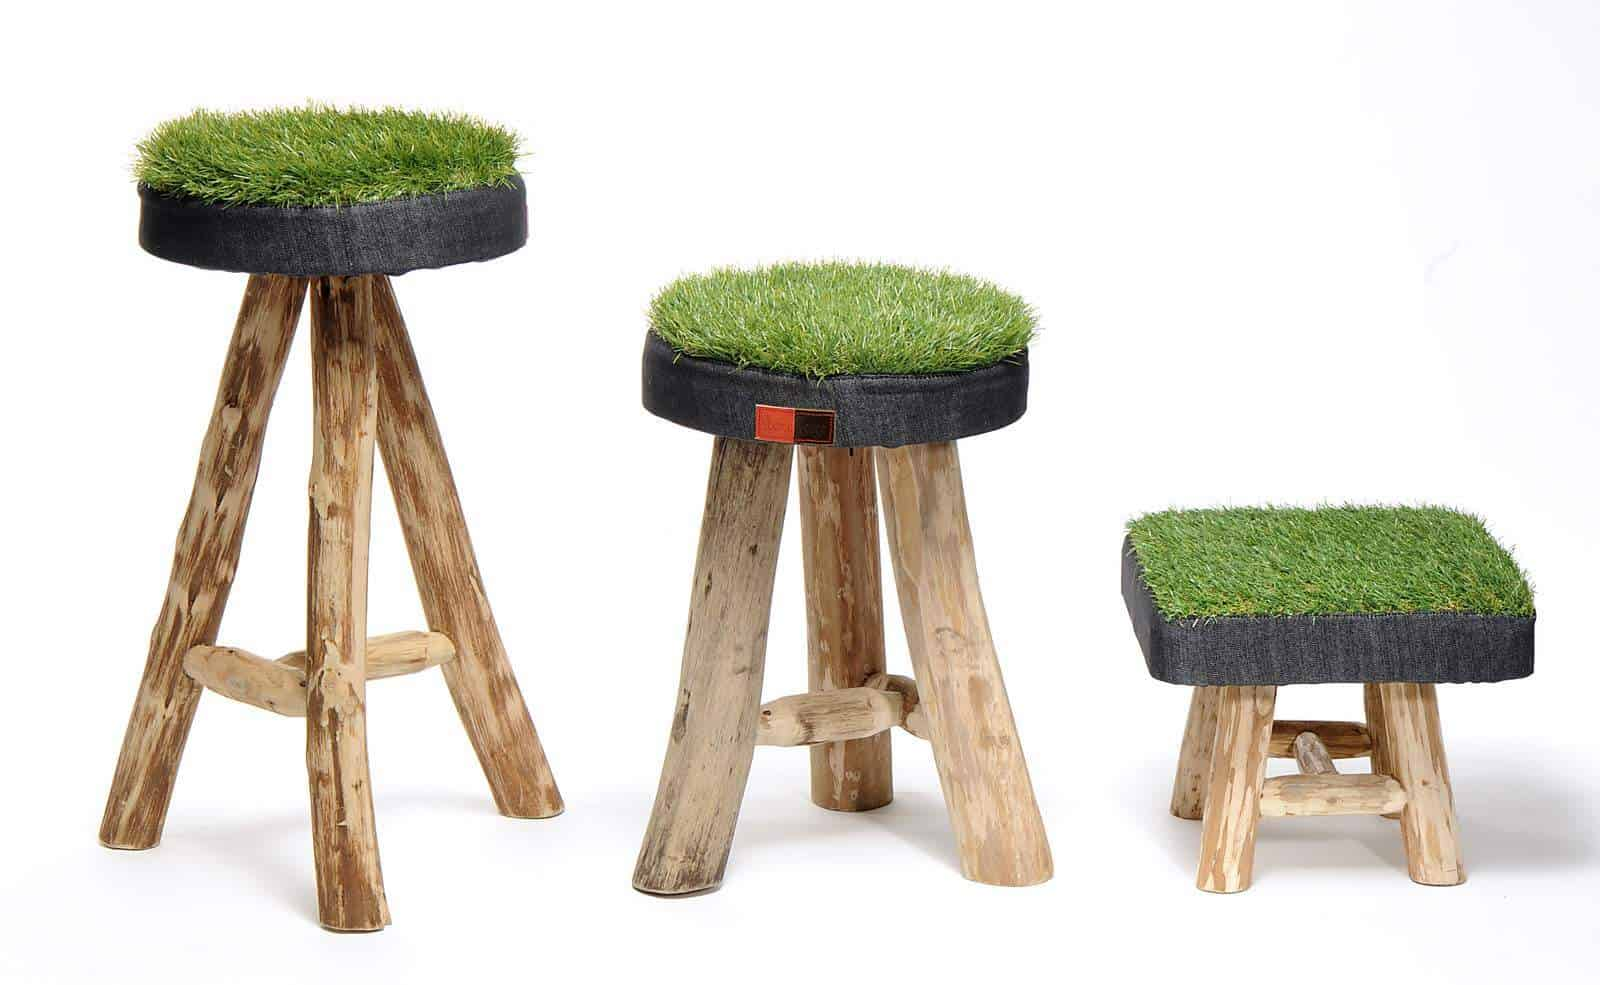 Sit on Grass • Recycled Ideas • Recyclart -> Ecksofa Leder Mit Hocker